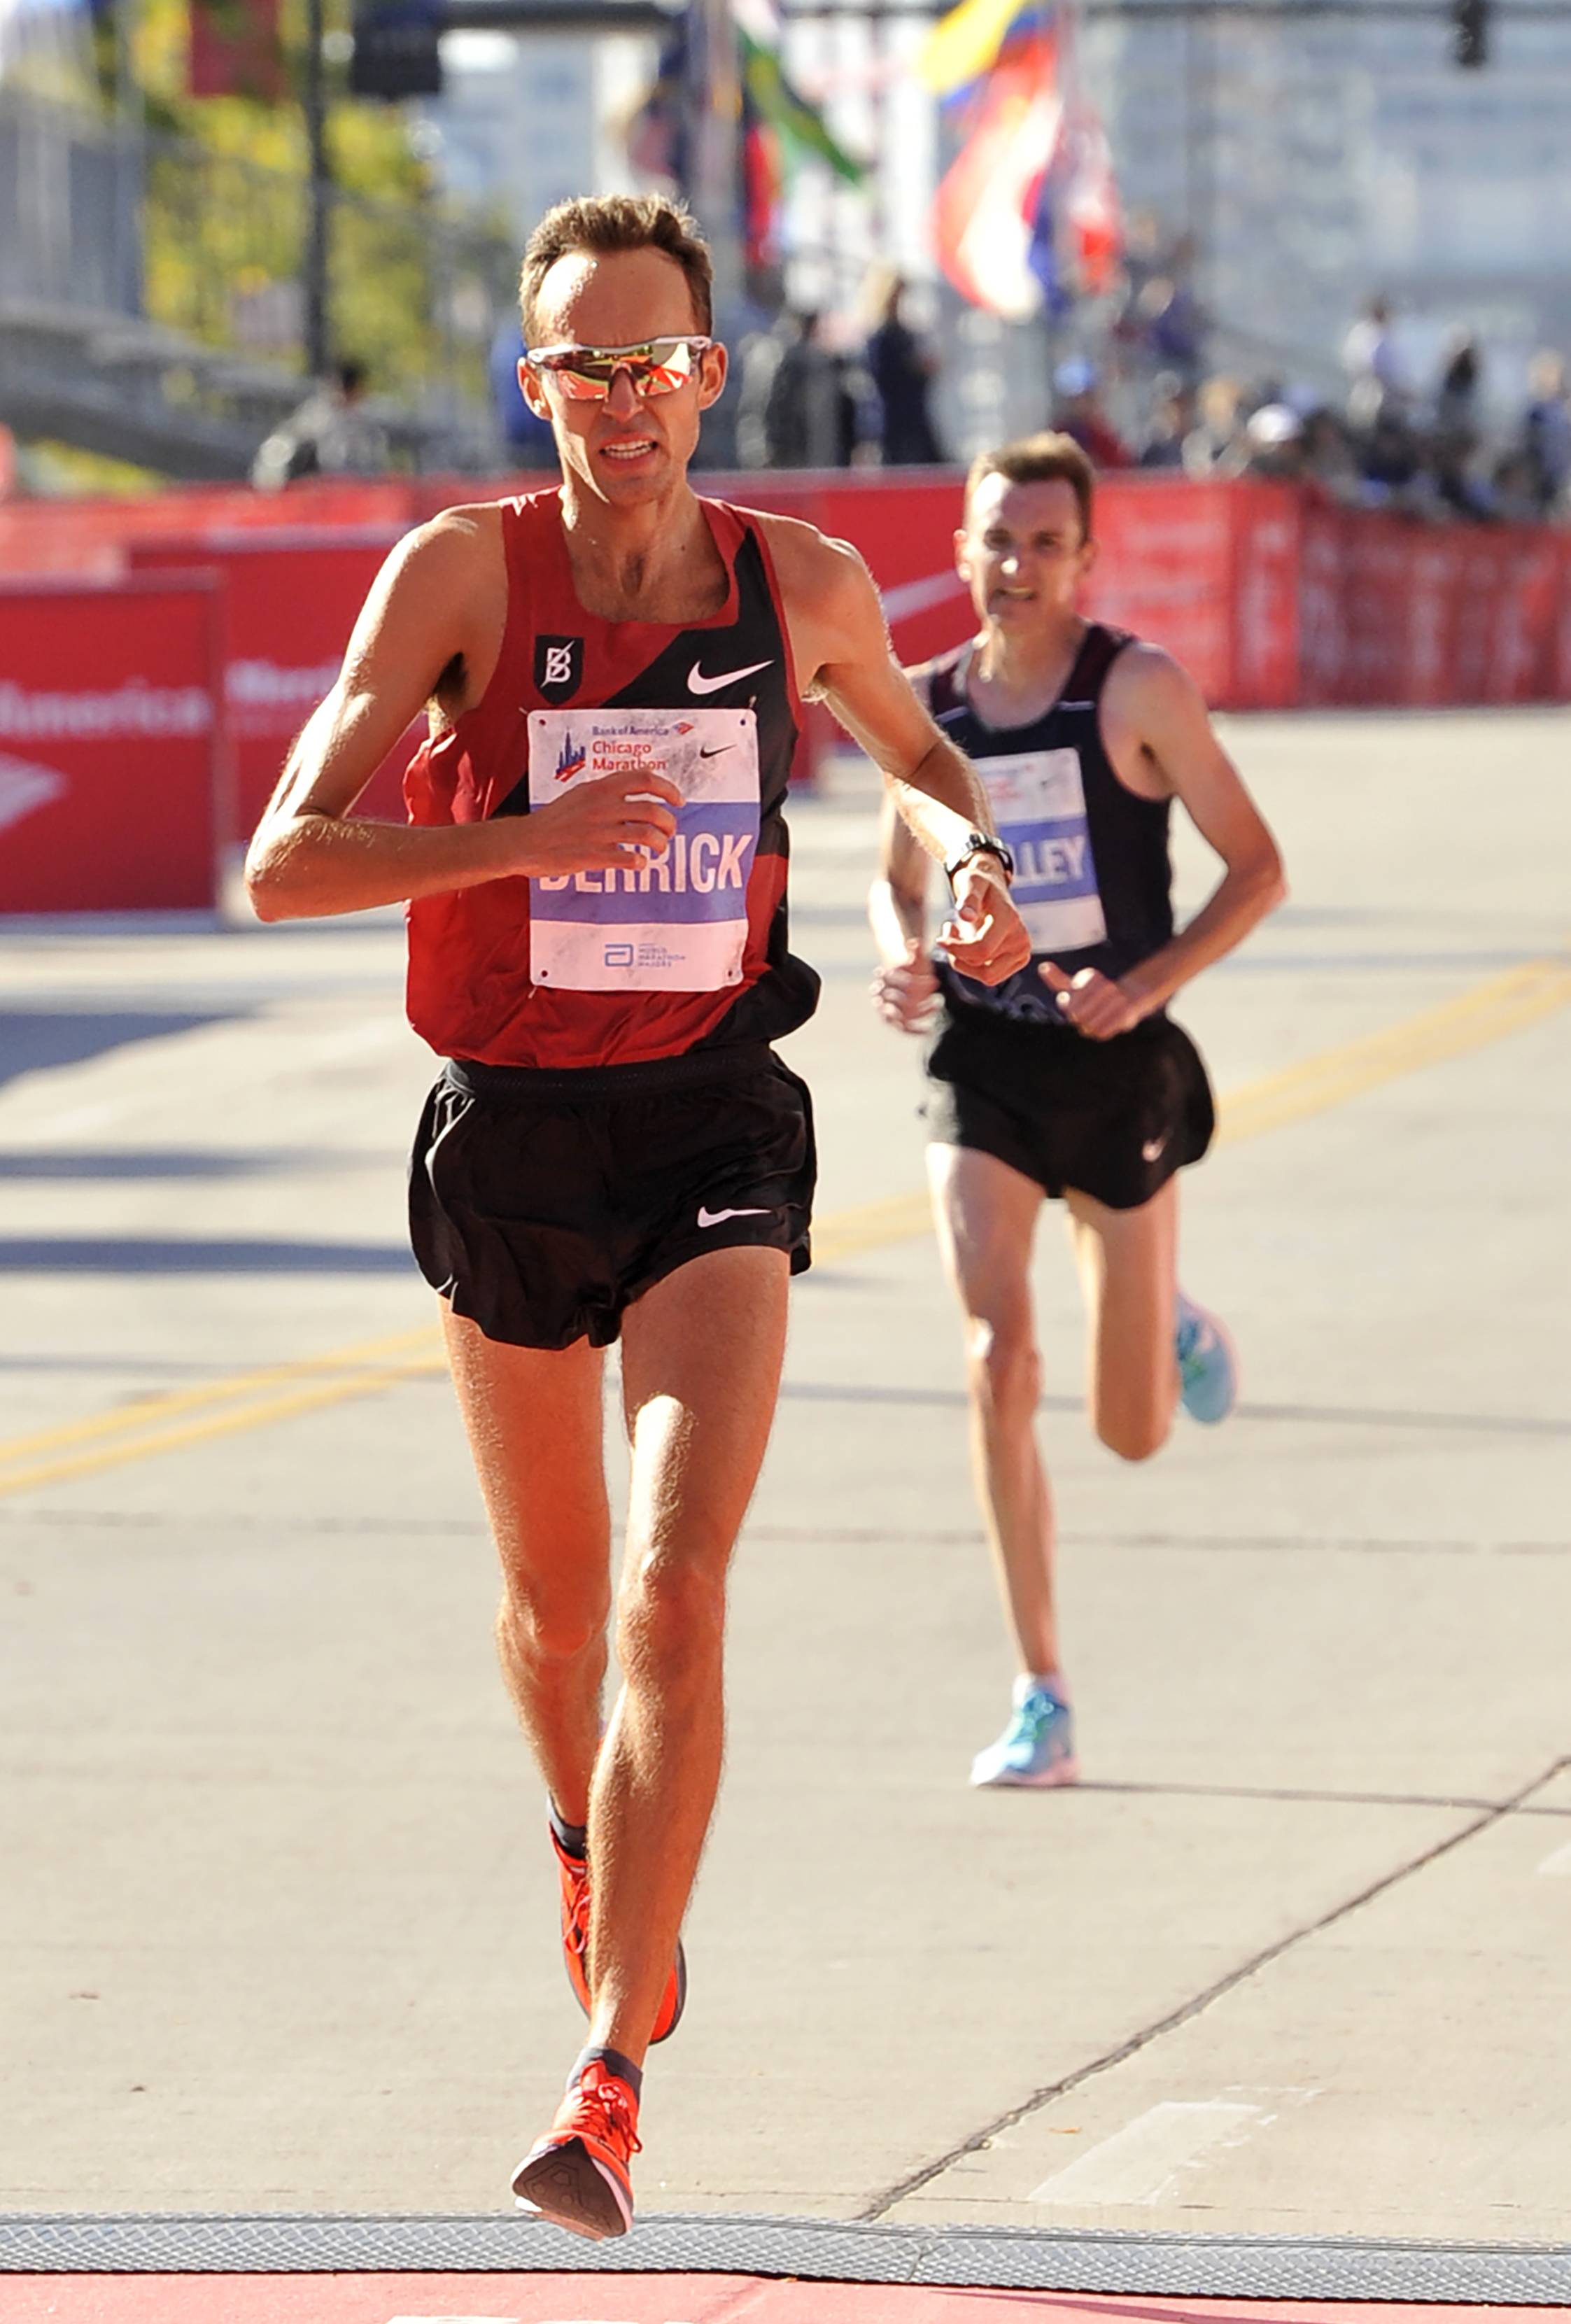 Exceptional Former Naperville Resident Chris Derrick Finishes Ninth In Sundayu0027s Bank Of  America Chicago Marathon. Competing